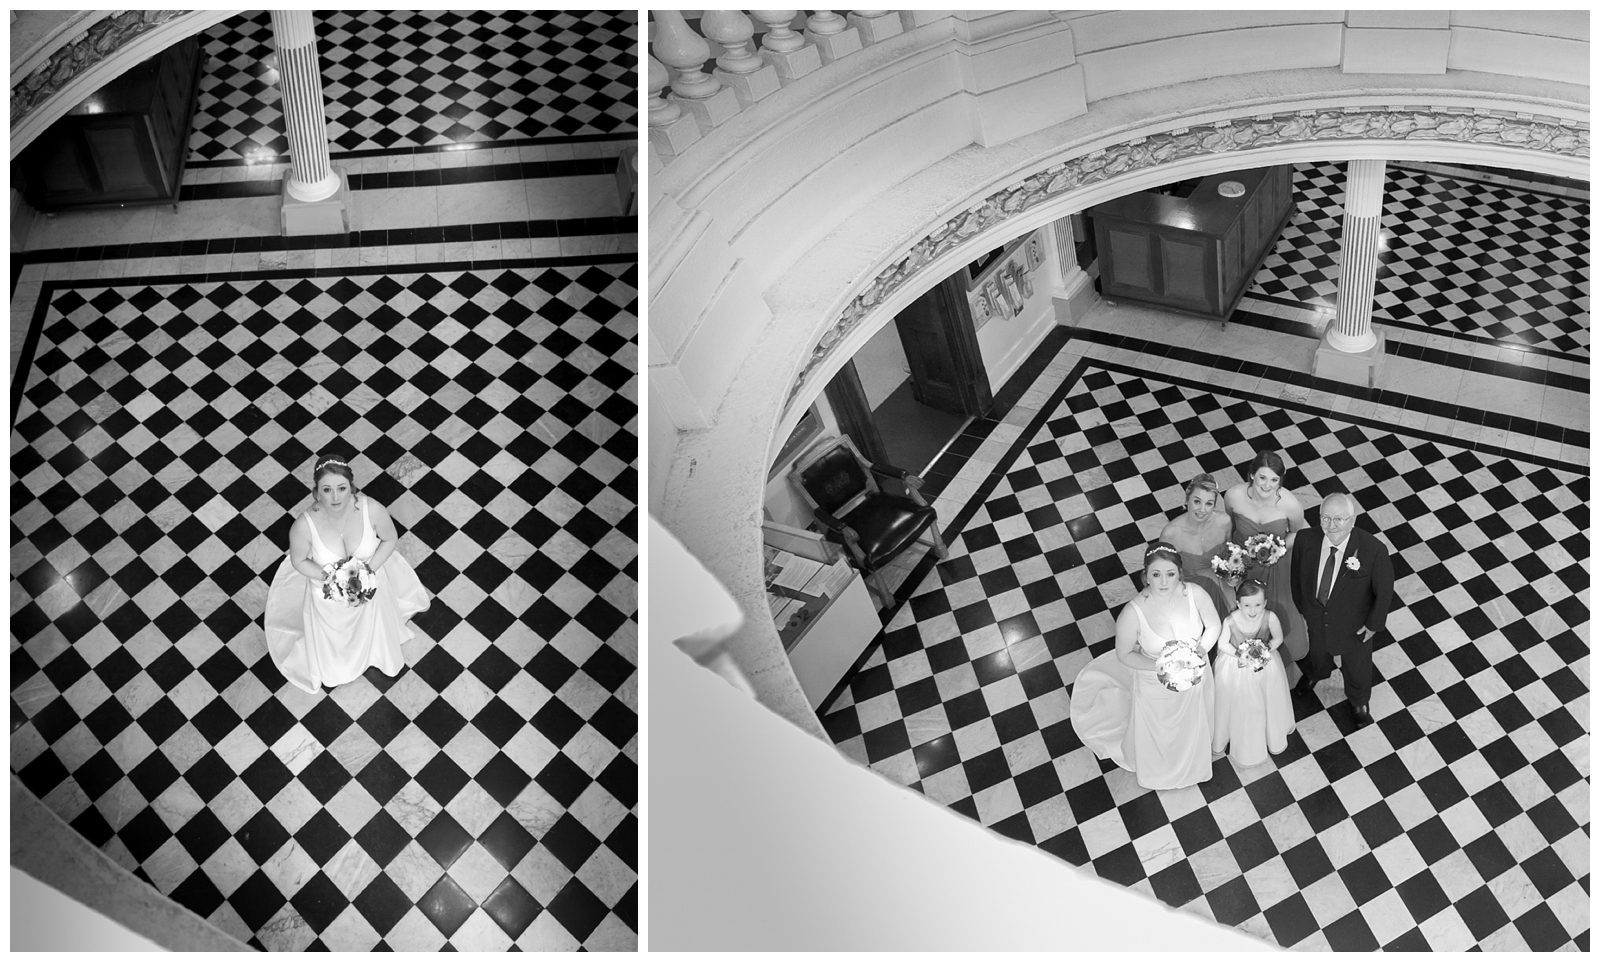 Creative wedding photography at Stockport Town Hall